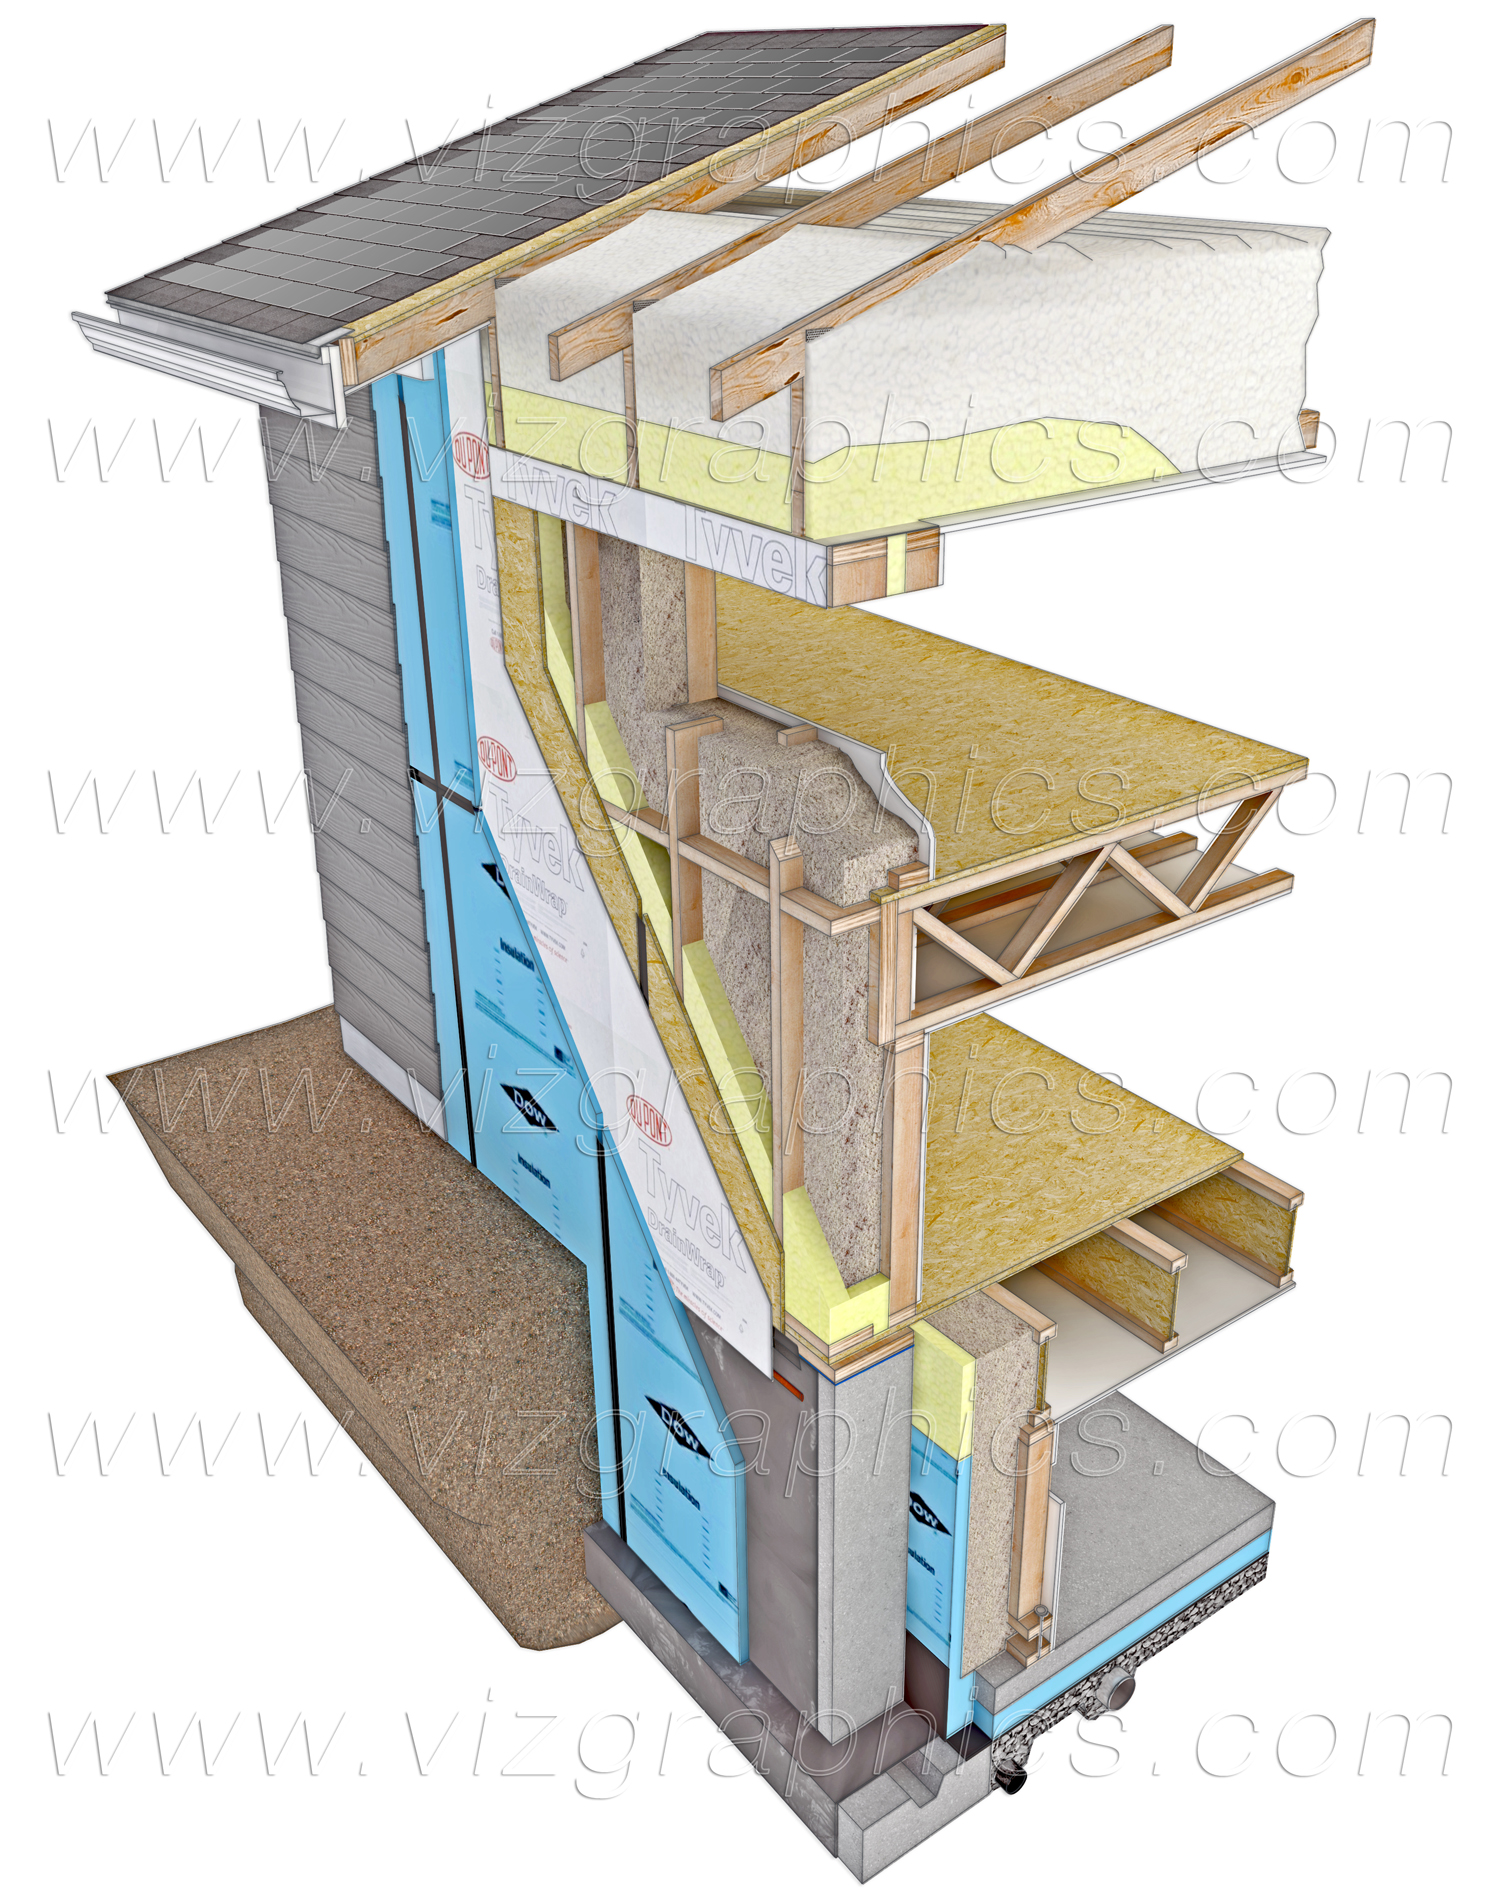 Passive Solar Wall Section Cutaway Rendering Wm